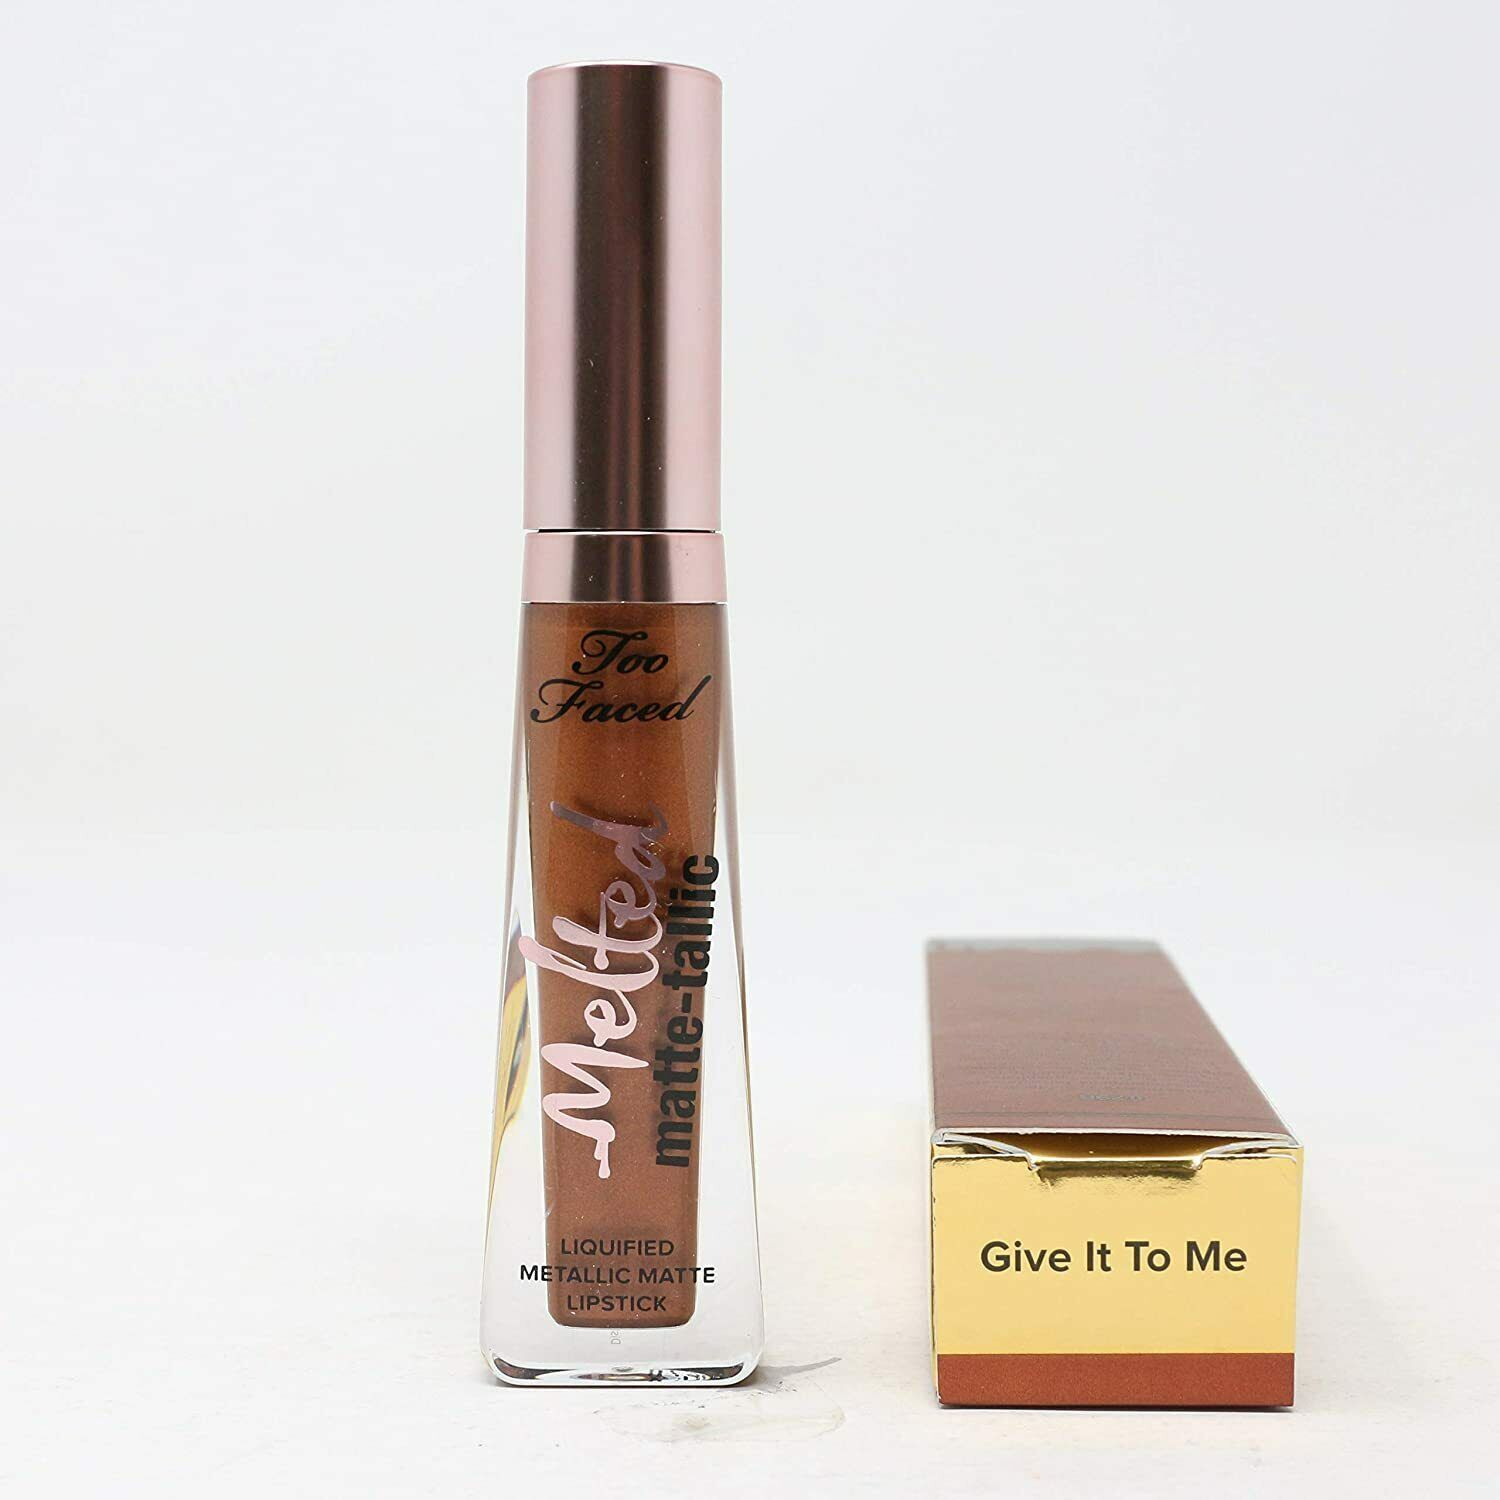 Primary image for Too Faced Melted Matte-tallic Liquified Metallic Matte Lipstick GIVE IT TO ME